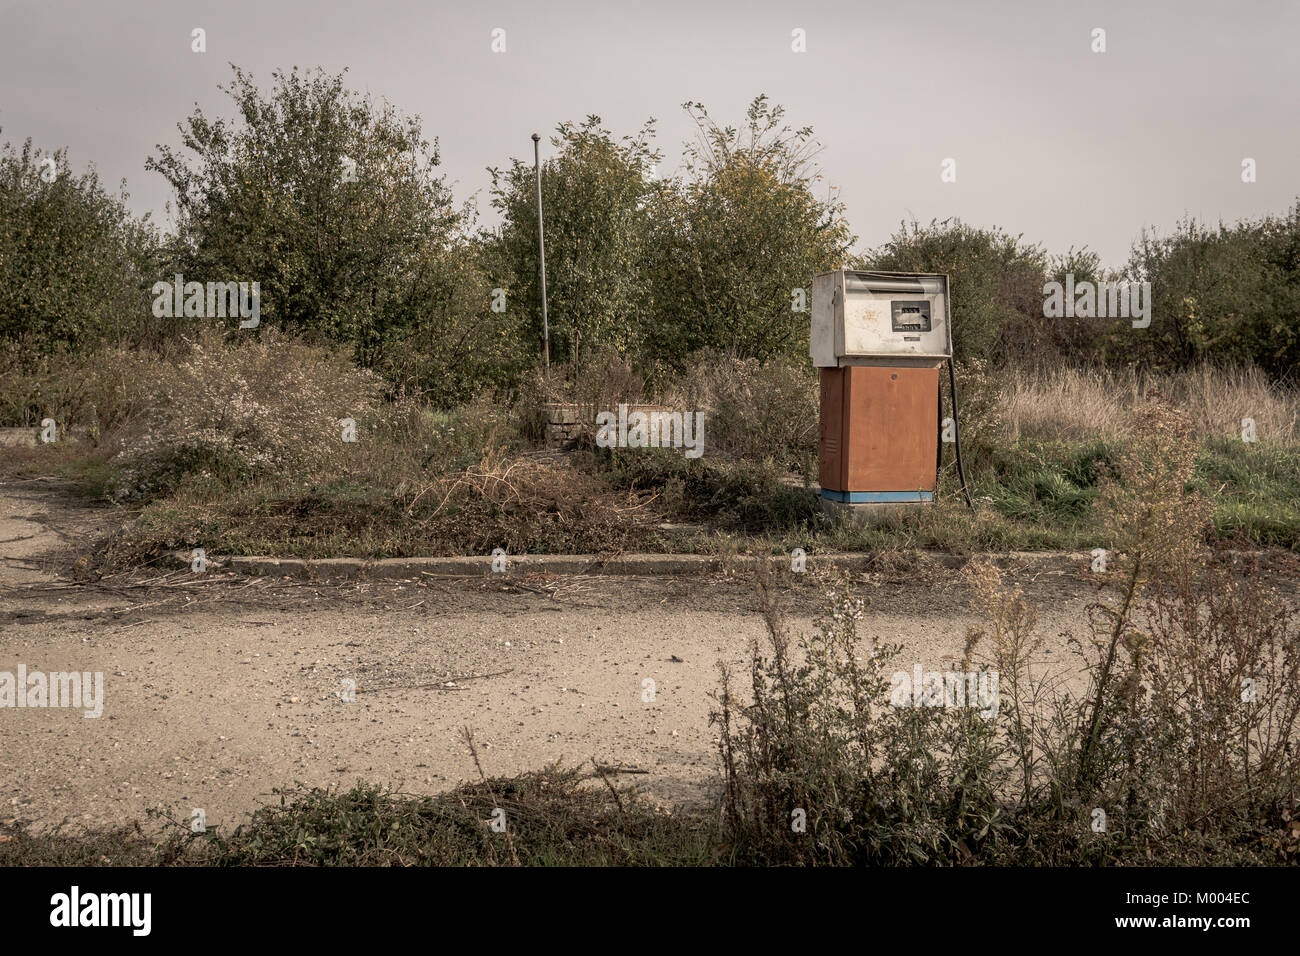 Rusty old abandoned gas station in a middle of nowhere - Stock Image